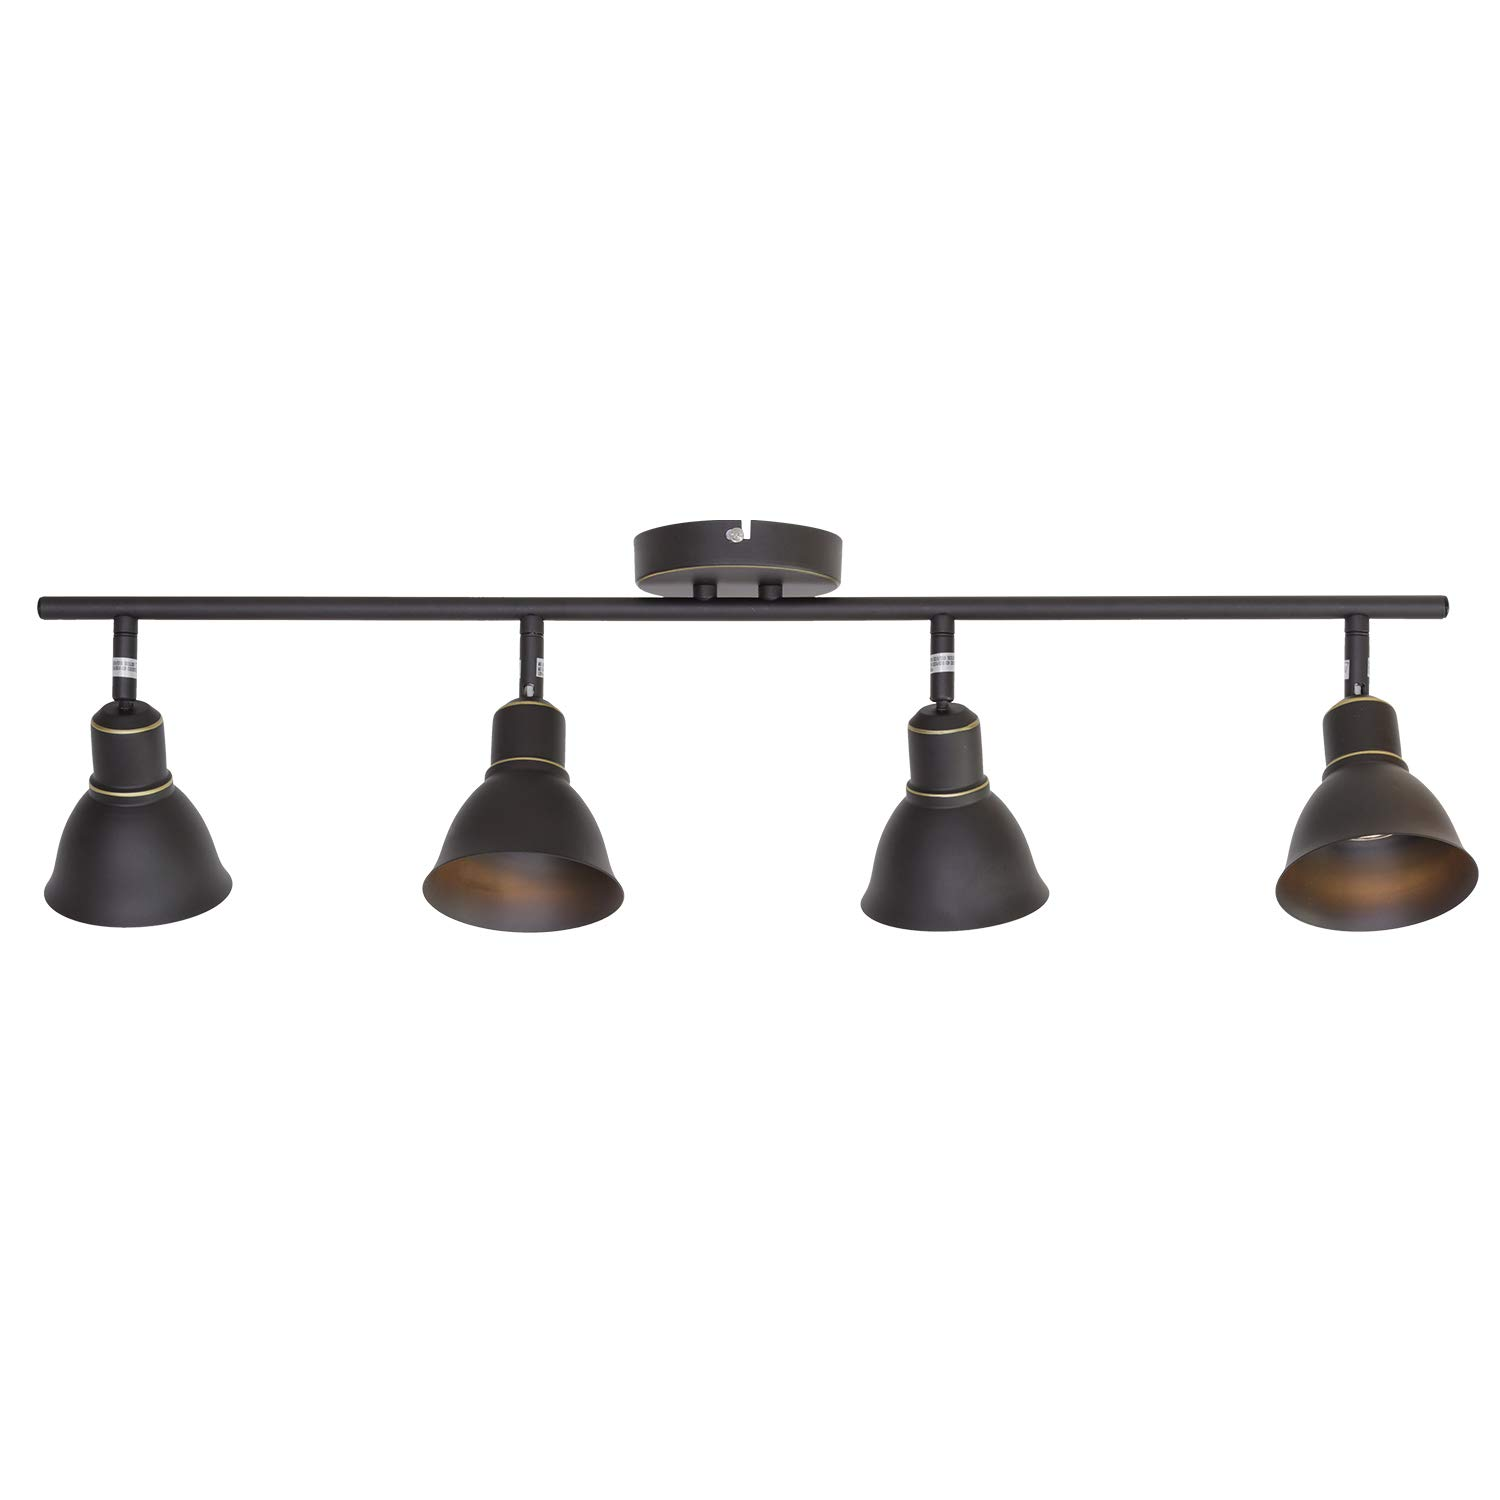 MELUCEE 4-Light Ceiling Spotlights Track Lighting Kit, Kitchen Track Lighting Fixtures Ceiling, 35W GU10 Base Halogen Bulbs Included, Oil Rubbed Bronze Finished